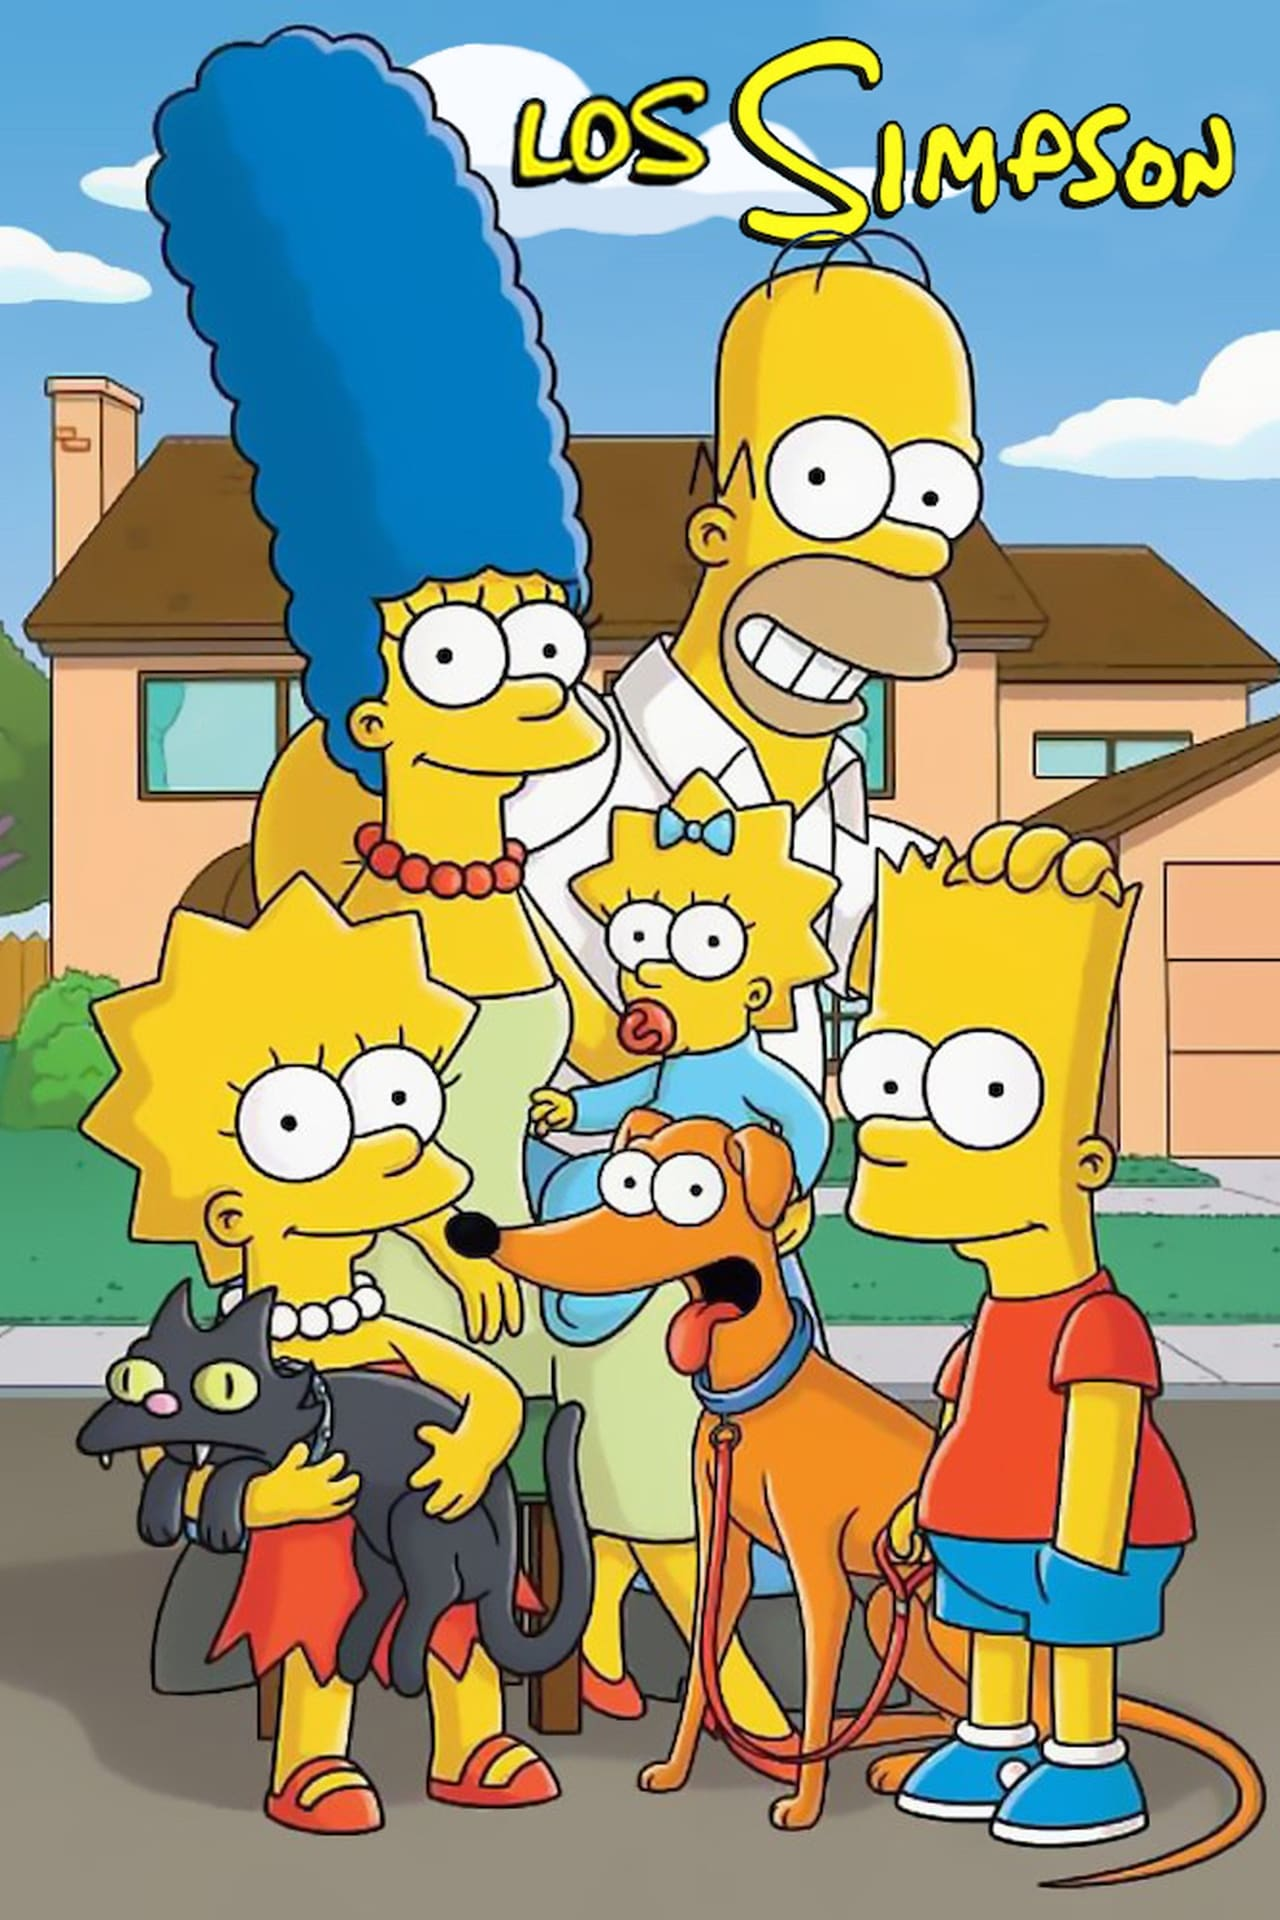 Los Simpson - Season 10 Episode 3 : Bart, la madre